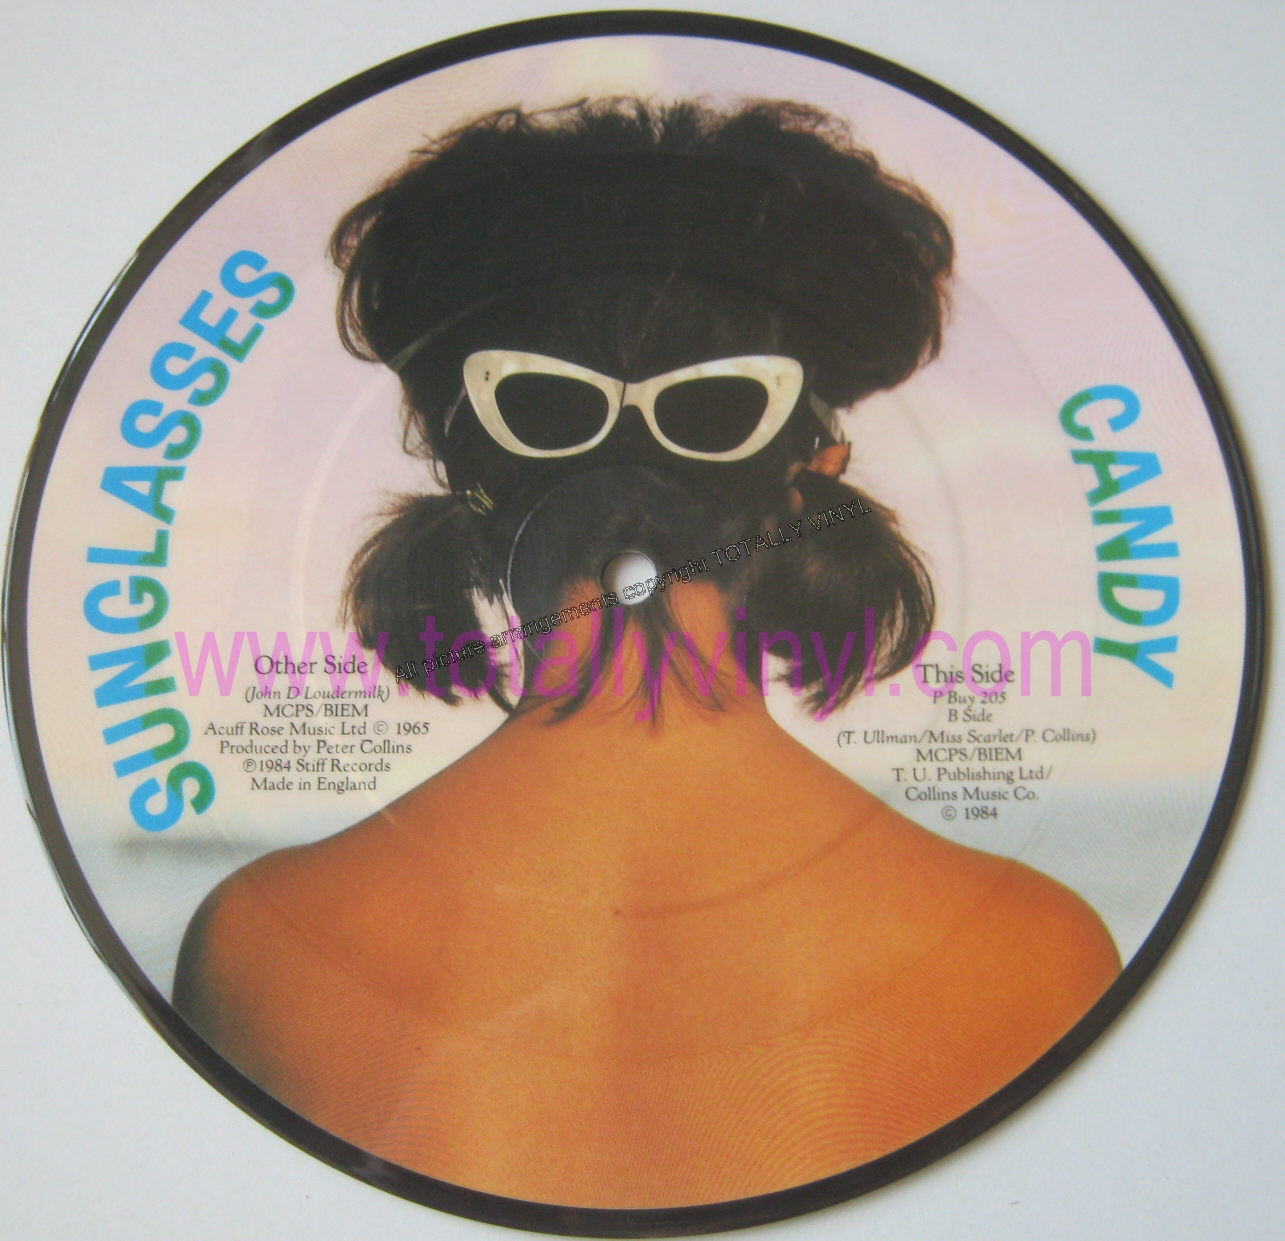 Sunglasses Tracey Ullman  totally vinyl records ullman tracey sunglasses 7 inch